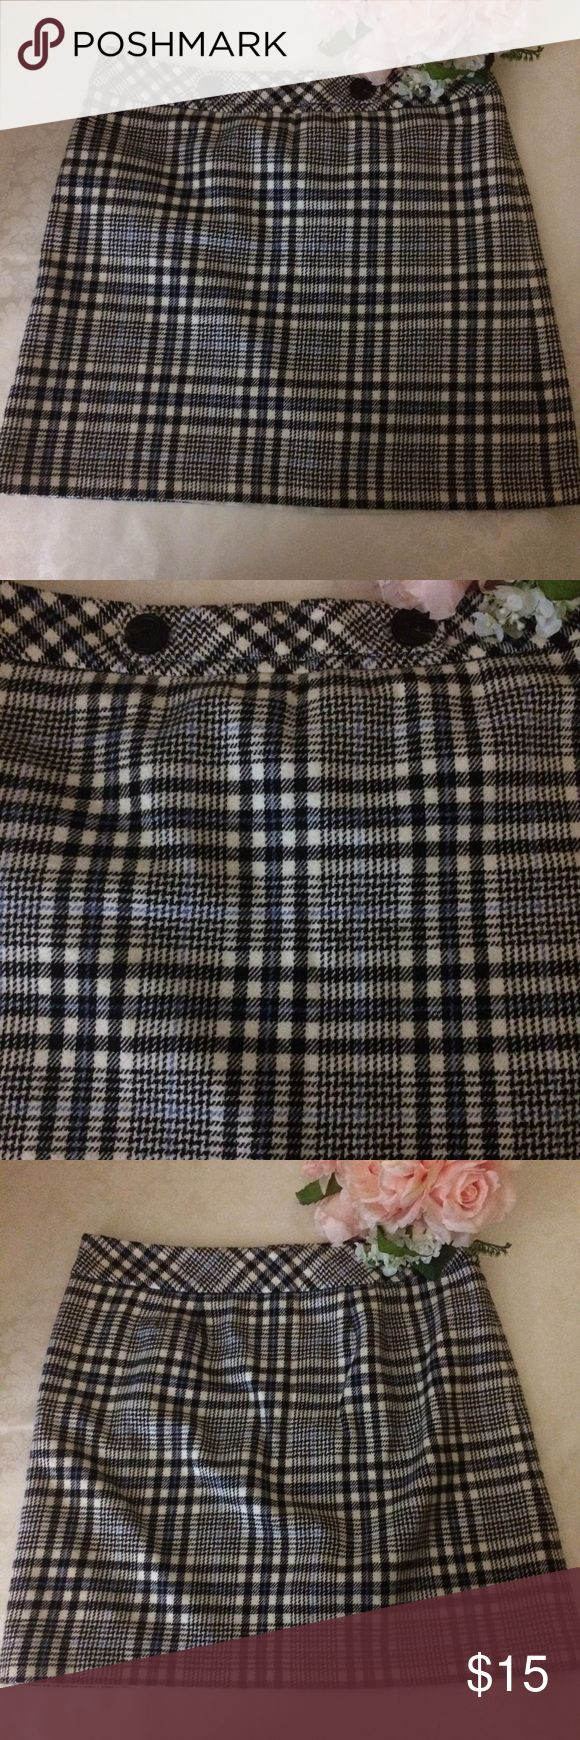 Ann Taylor Petites Skirt Size 12P Ann Taylor Plaid Petites Skirt Size 12P Fully Lined. Cute front button detail. Ann Taylor Skirts A-Line or Full